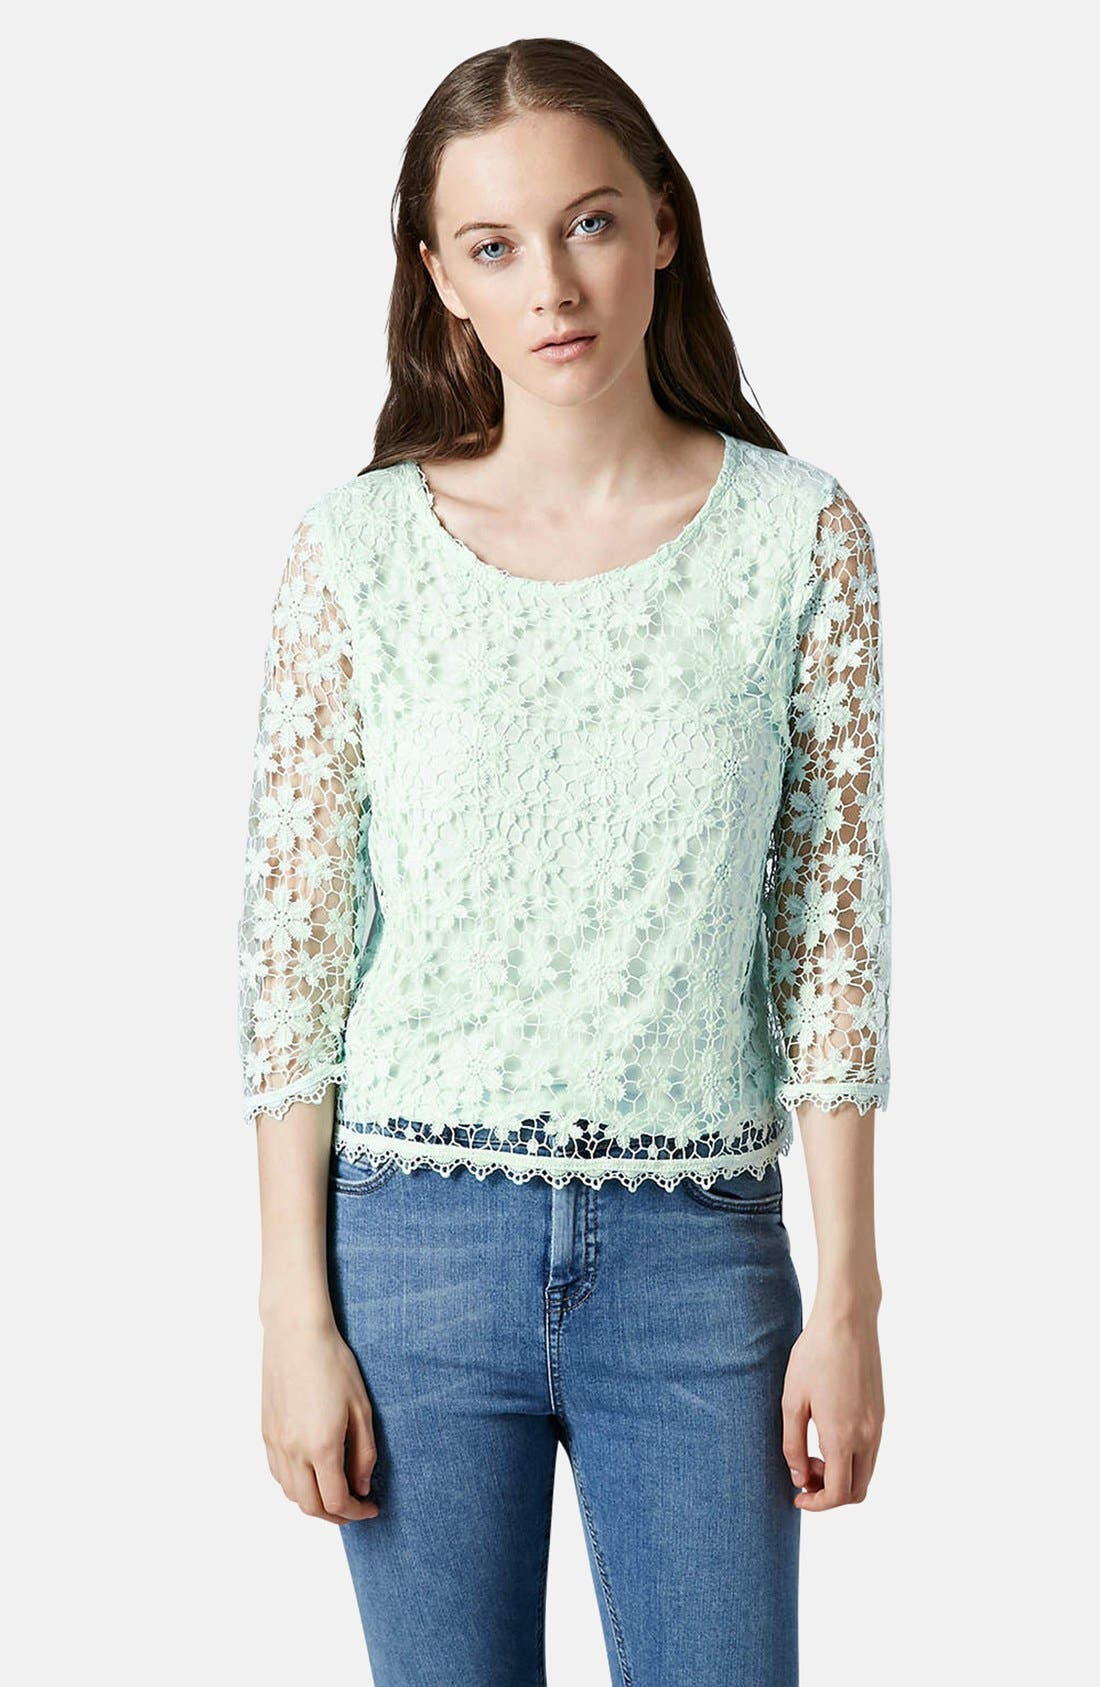 Crochet Lace Overlay Top,                             Main thumbnail 1, color,                             300